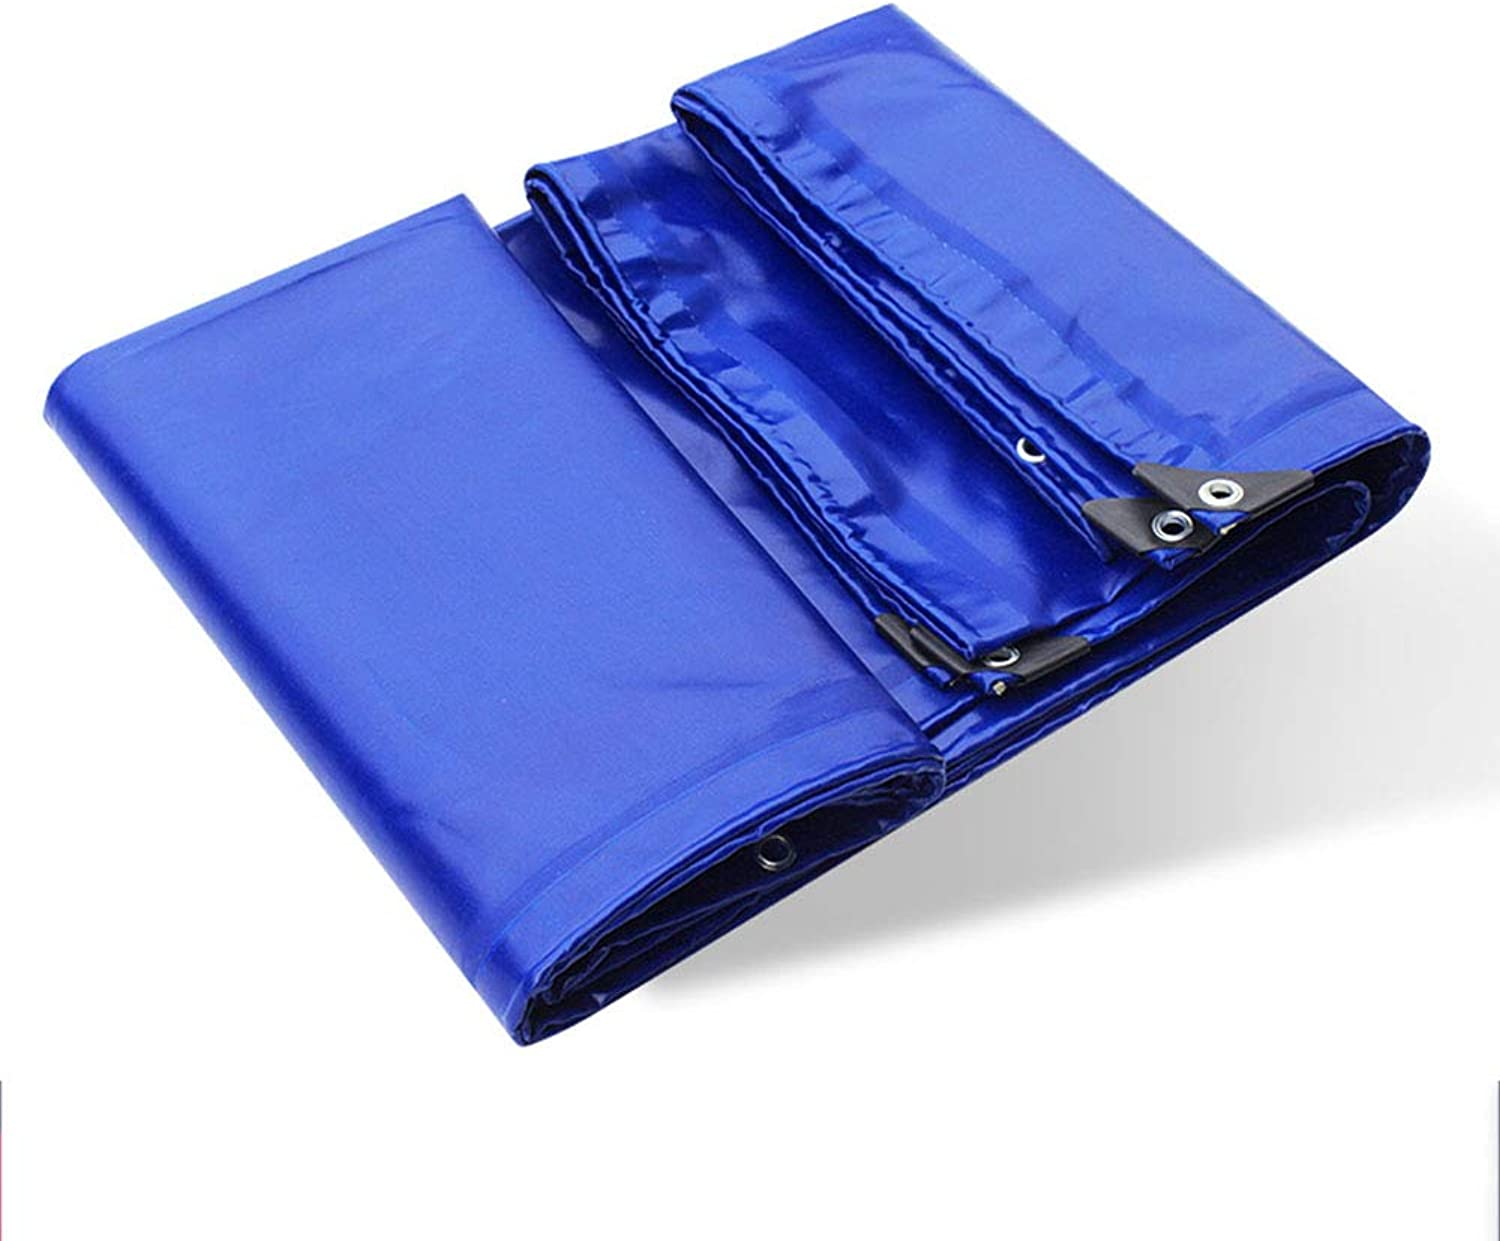 Fireproof Cloth FlameRetardant Cloth Glass Fiber Coated Waterproof Cloth  bluee, Weight 650g   Square